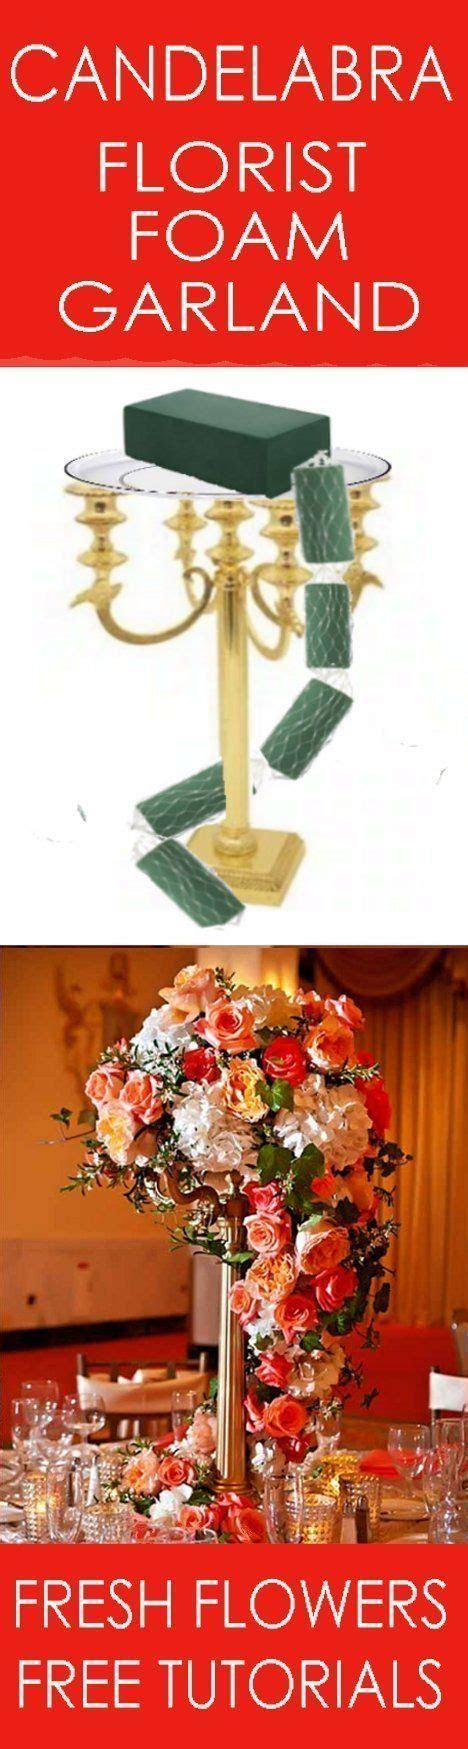 25  best ideas about Wedding corsages on Pinterest   Wrist